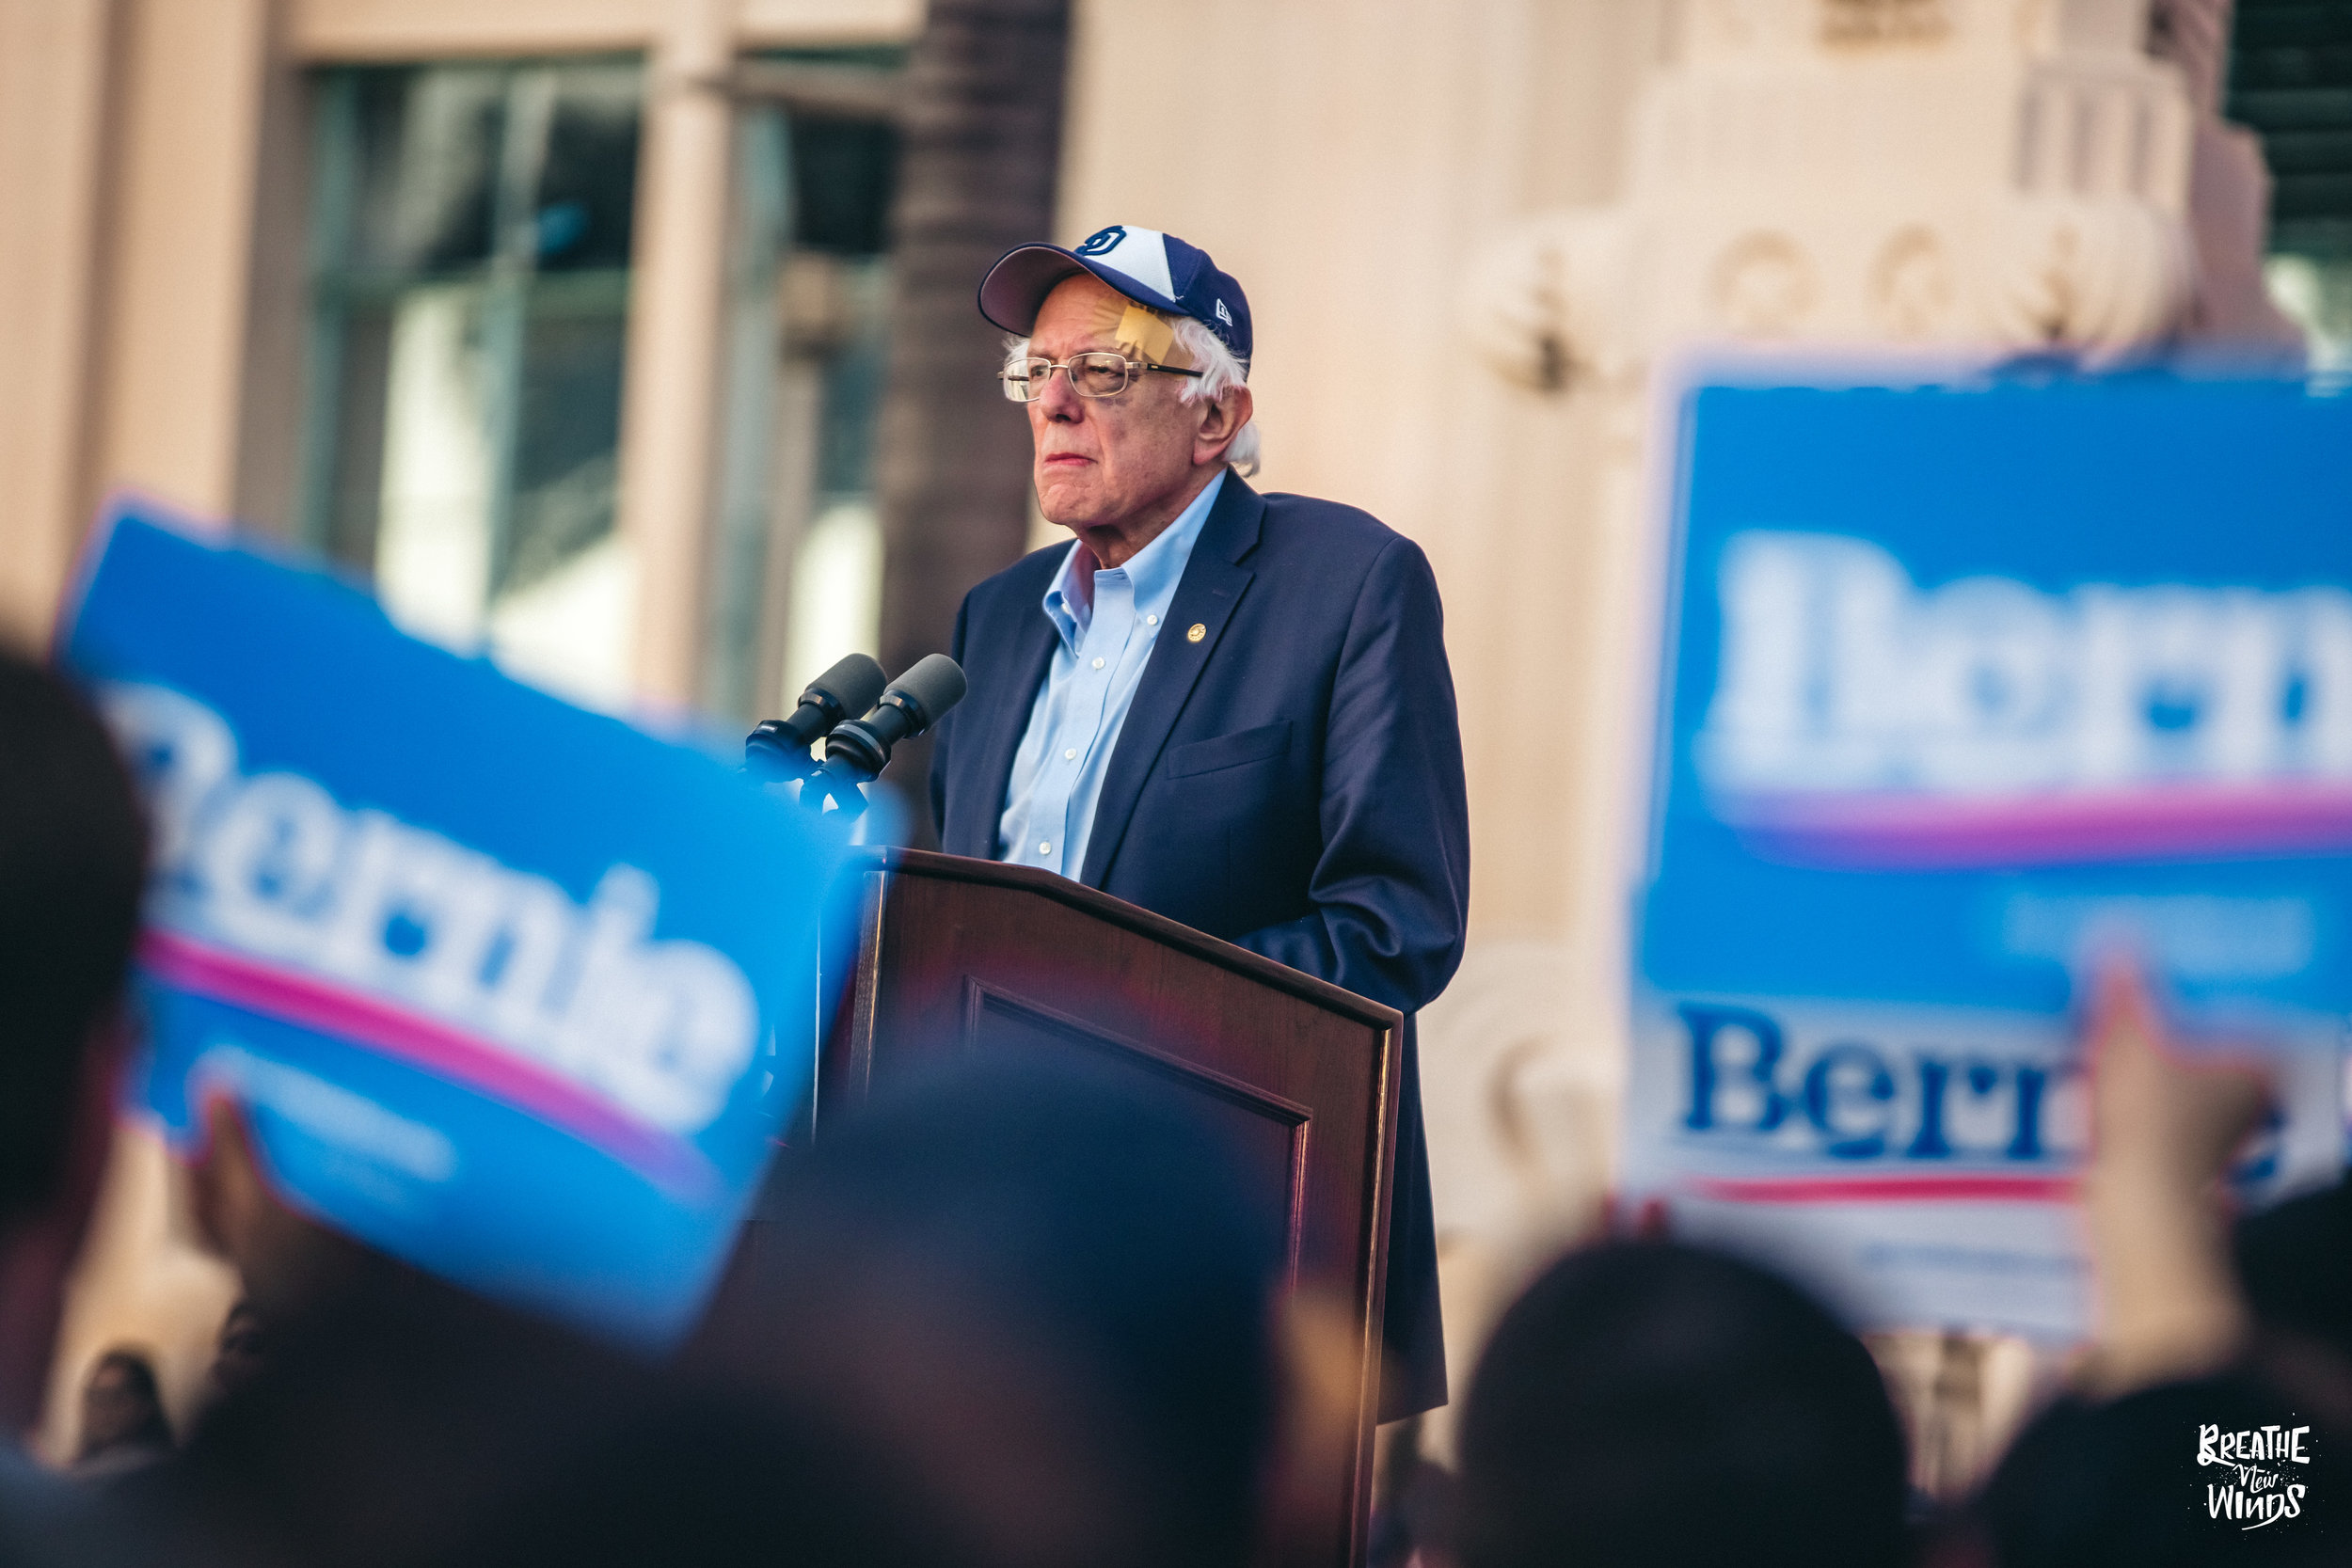 BernieInSD_22March2019-BernieAndFriends (58 of 78).jpg